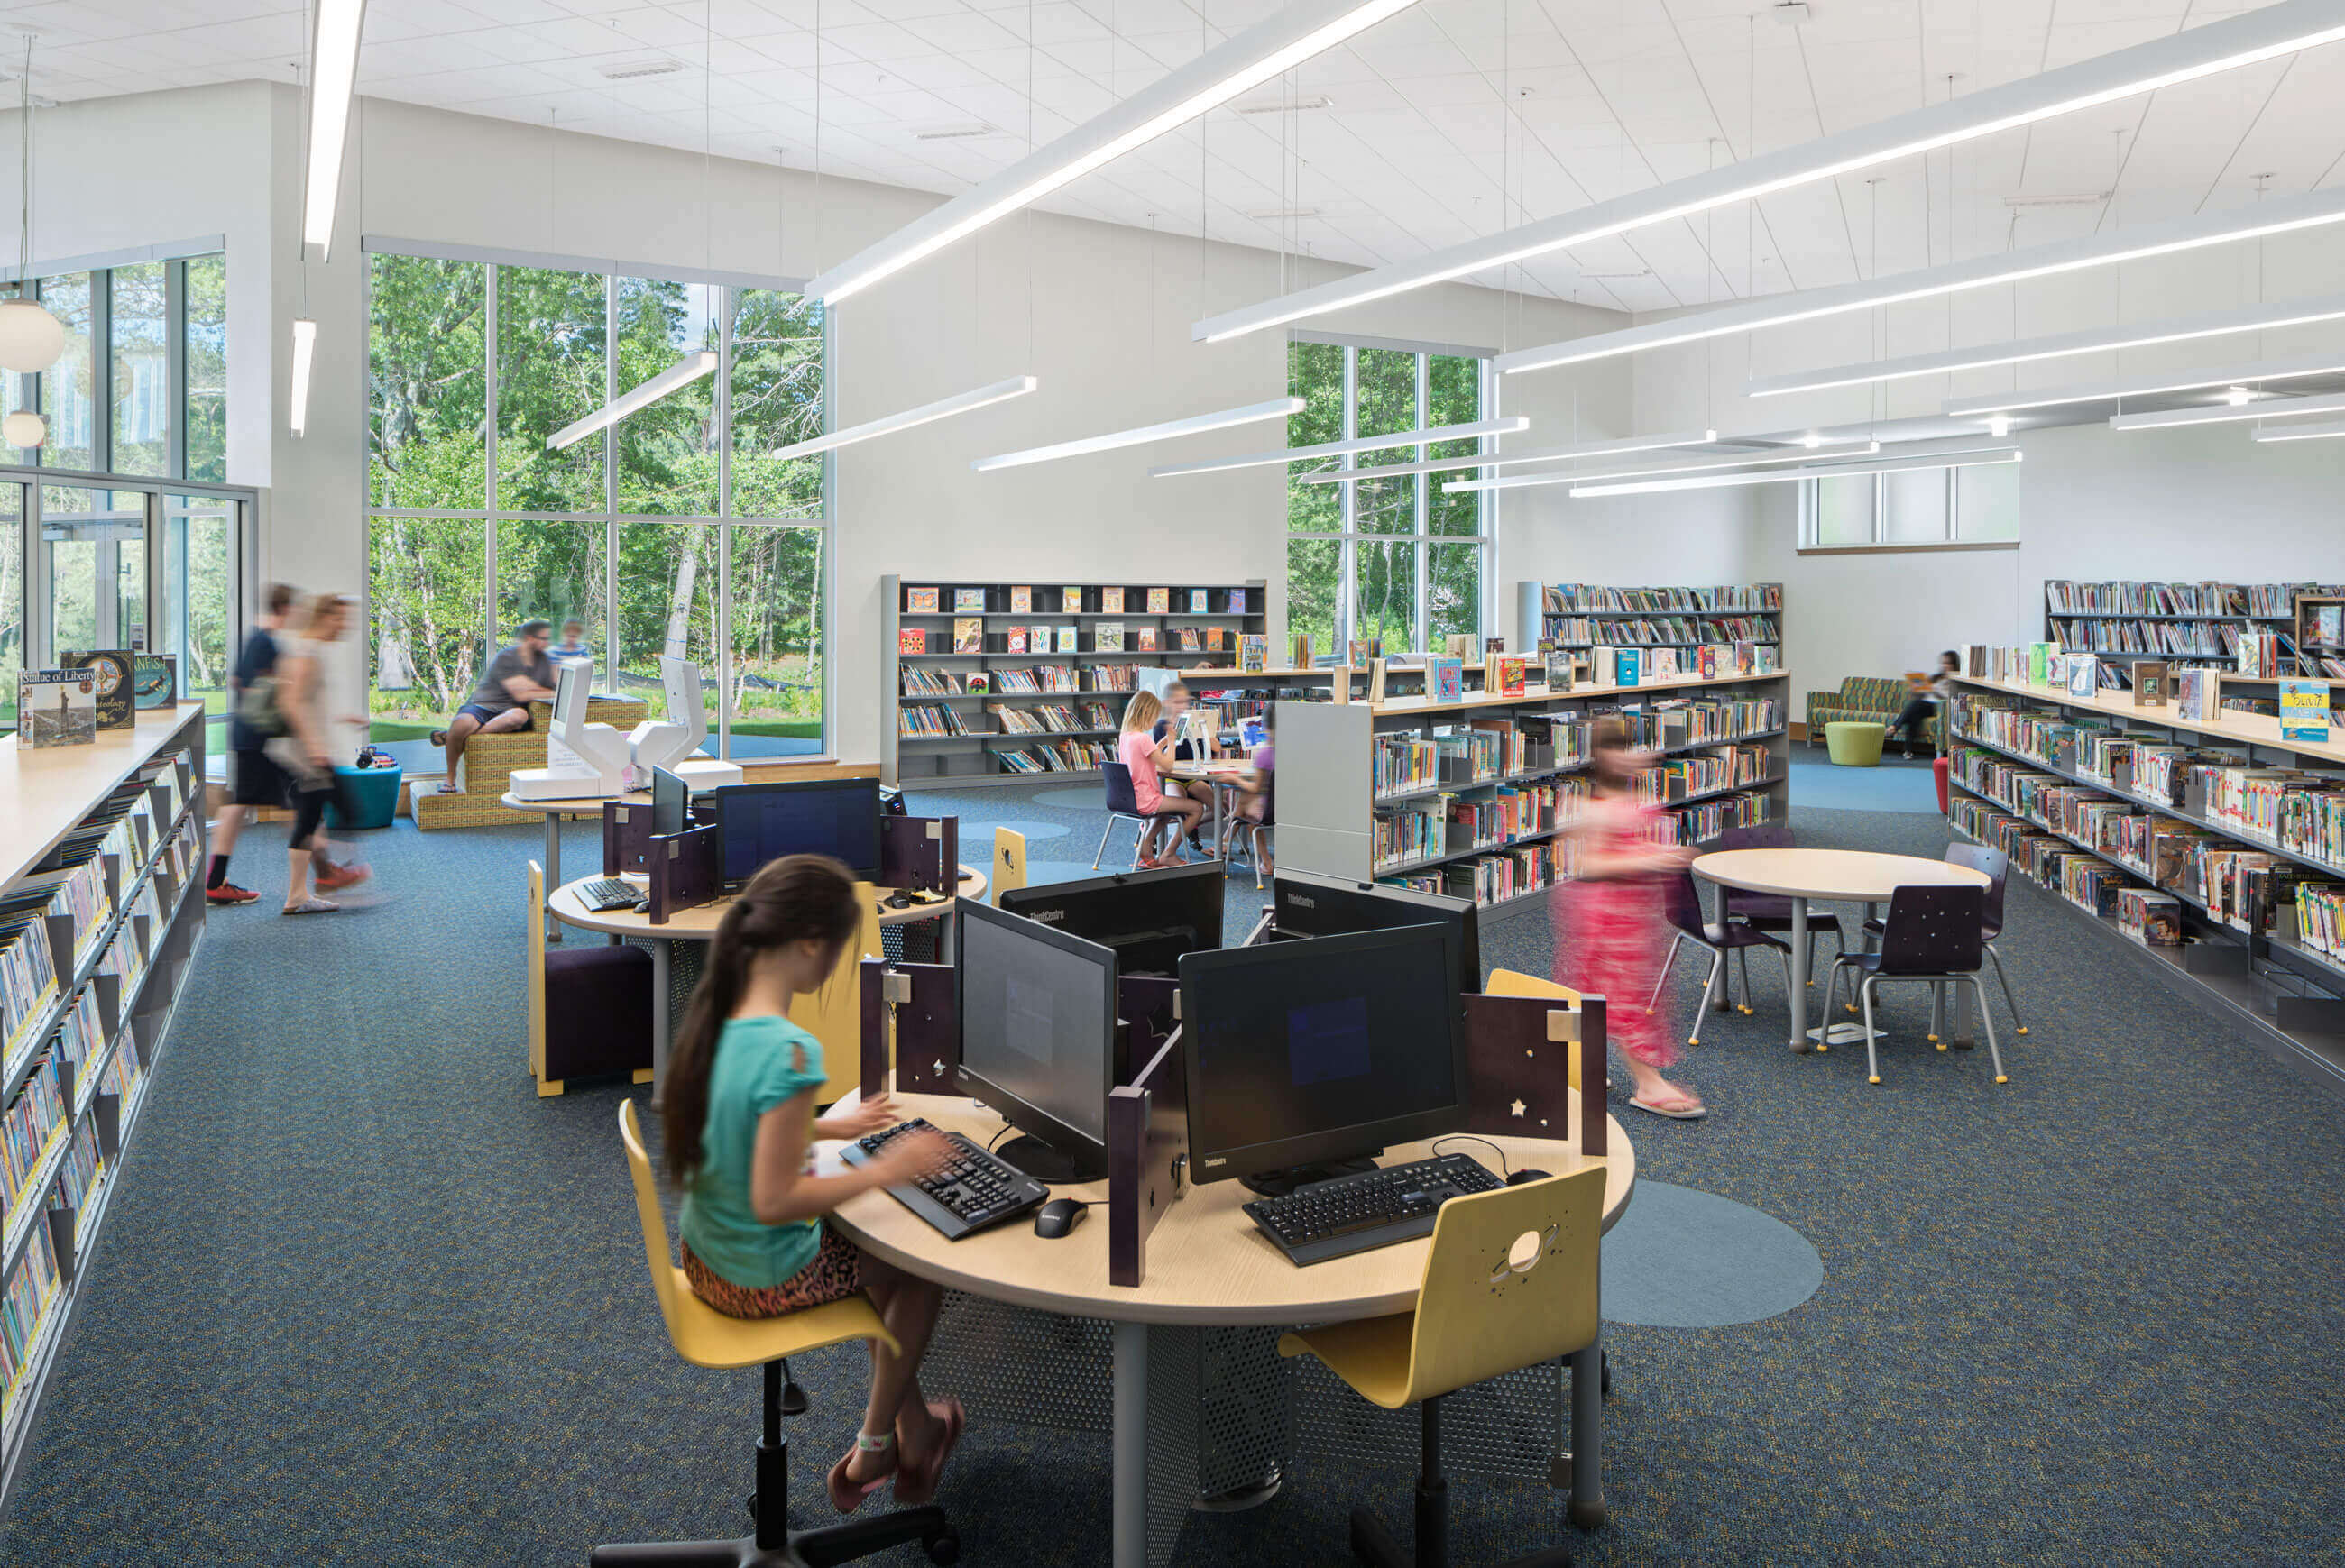 Girl at circular computer table, other children walking around bookshelves and sitting at tables with views onto lush green trees.